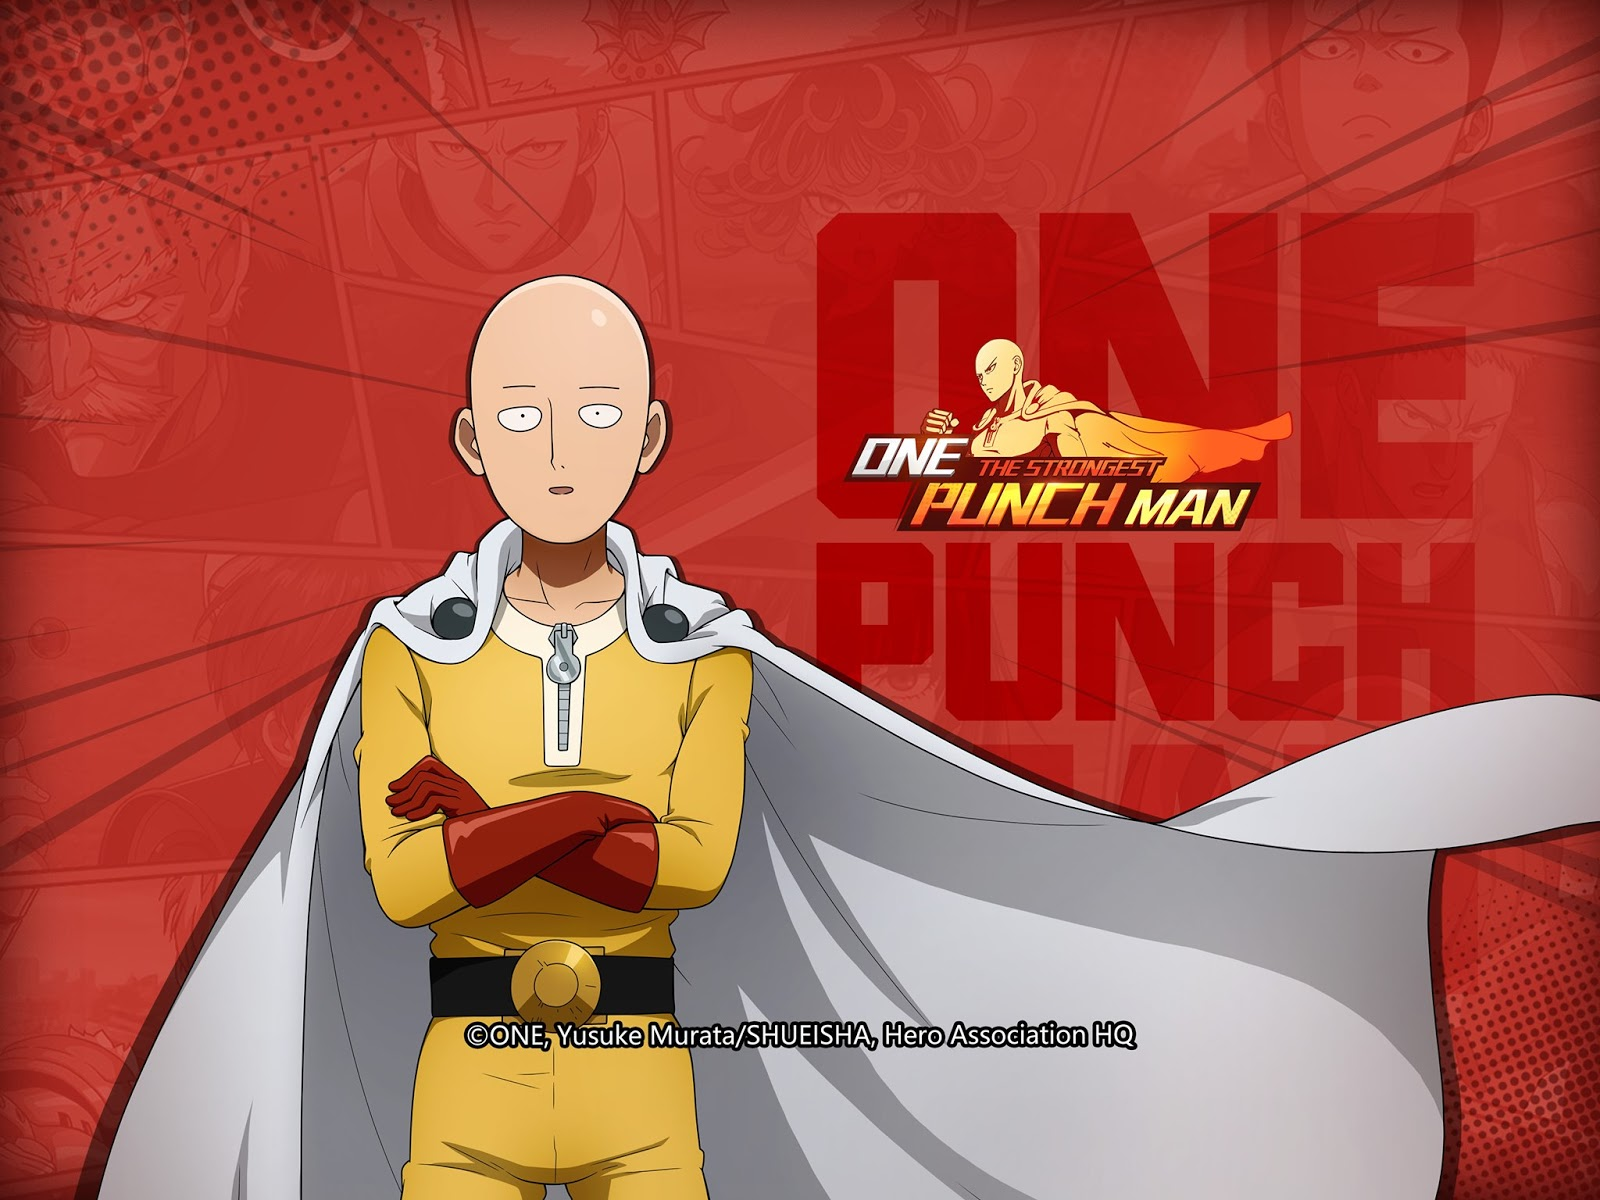 One Punch Man: The Strongest Pre-Registration, difference with OPM Road to Hero